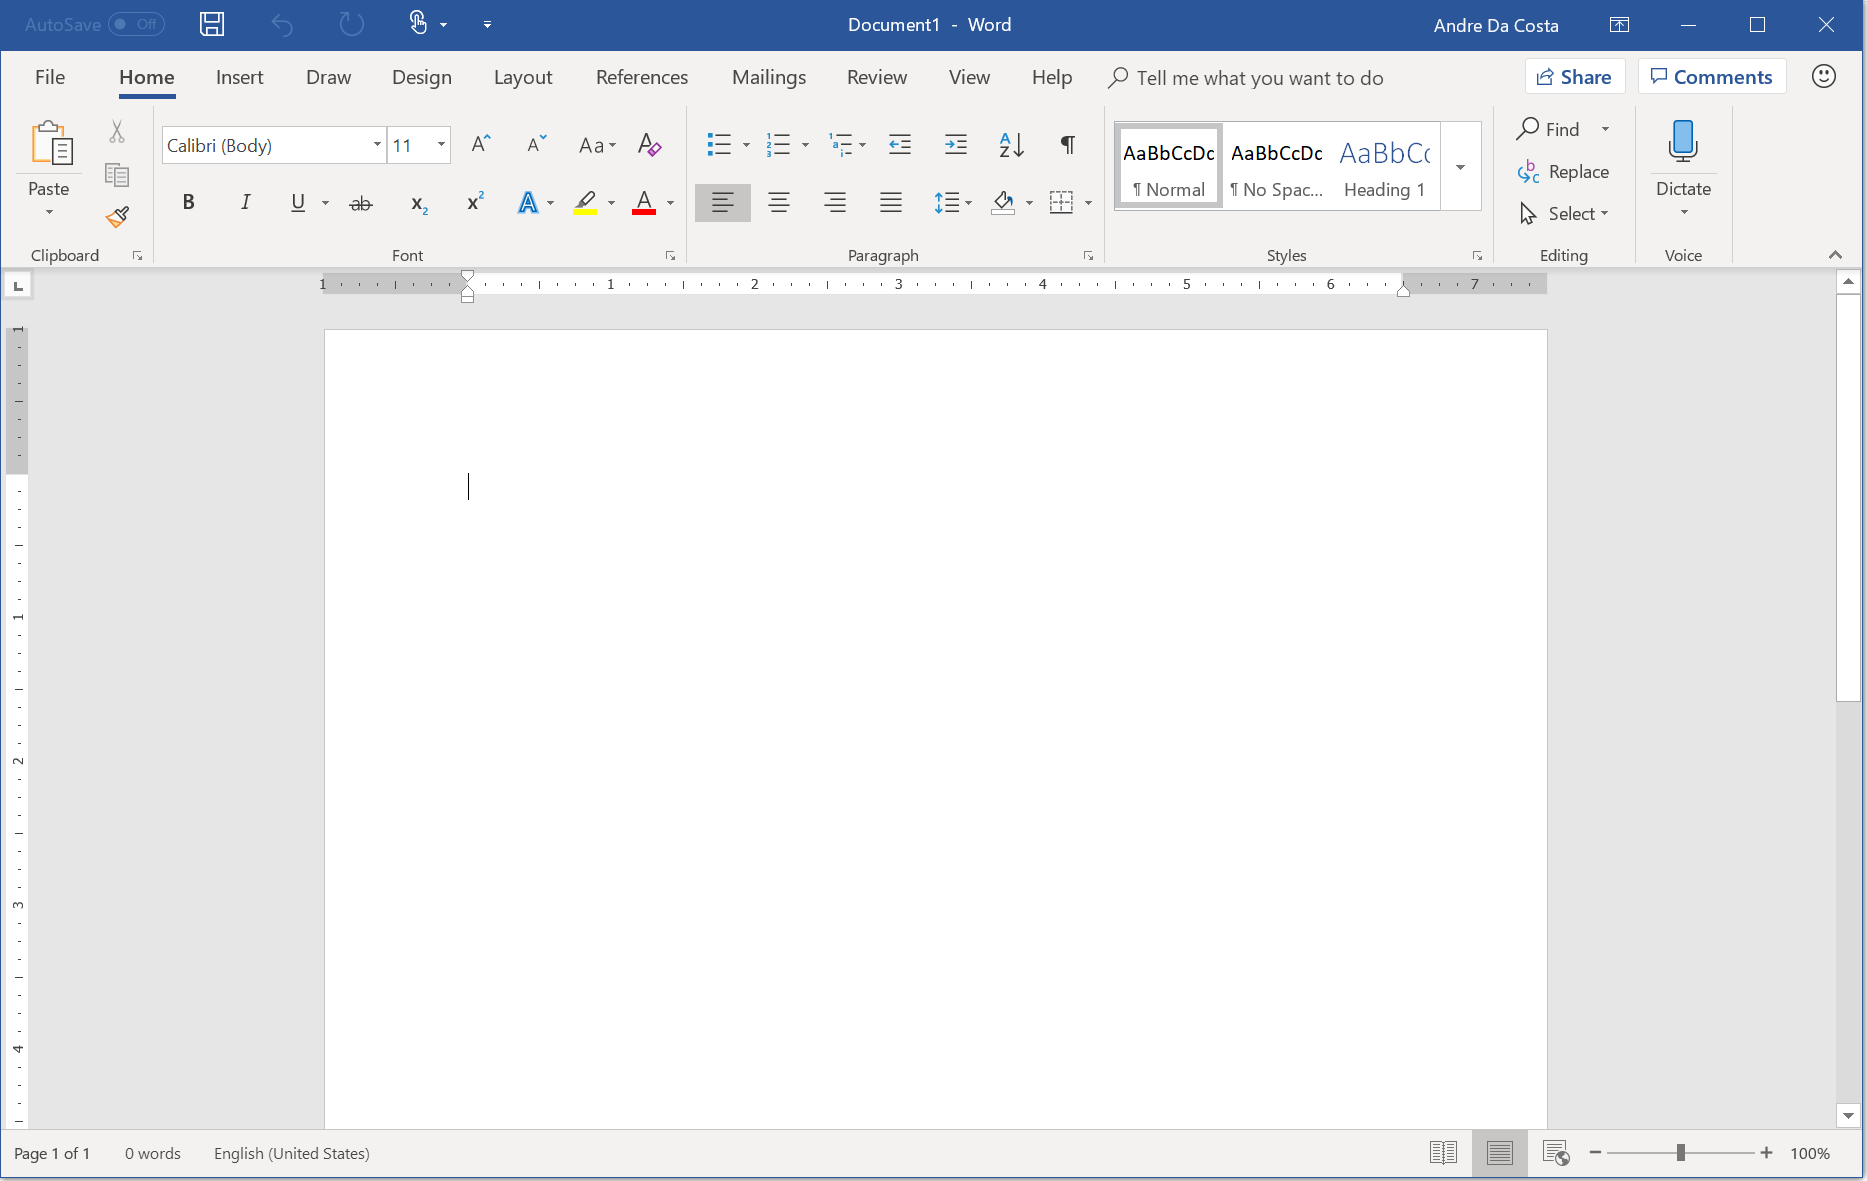 Office 365 and new Outlook simplified ribbon ac23dc48-54c8-4409-8720-c13af77623ba?upload=true.png